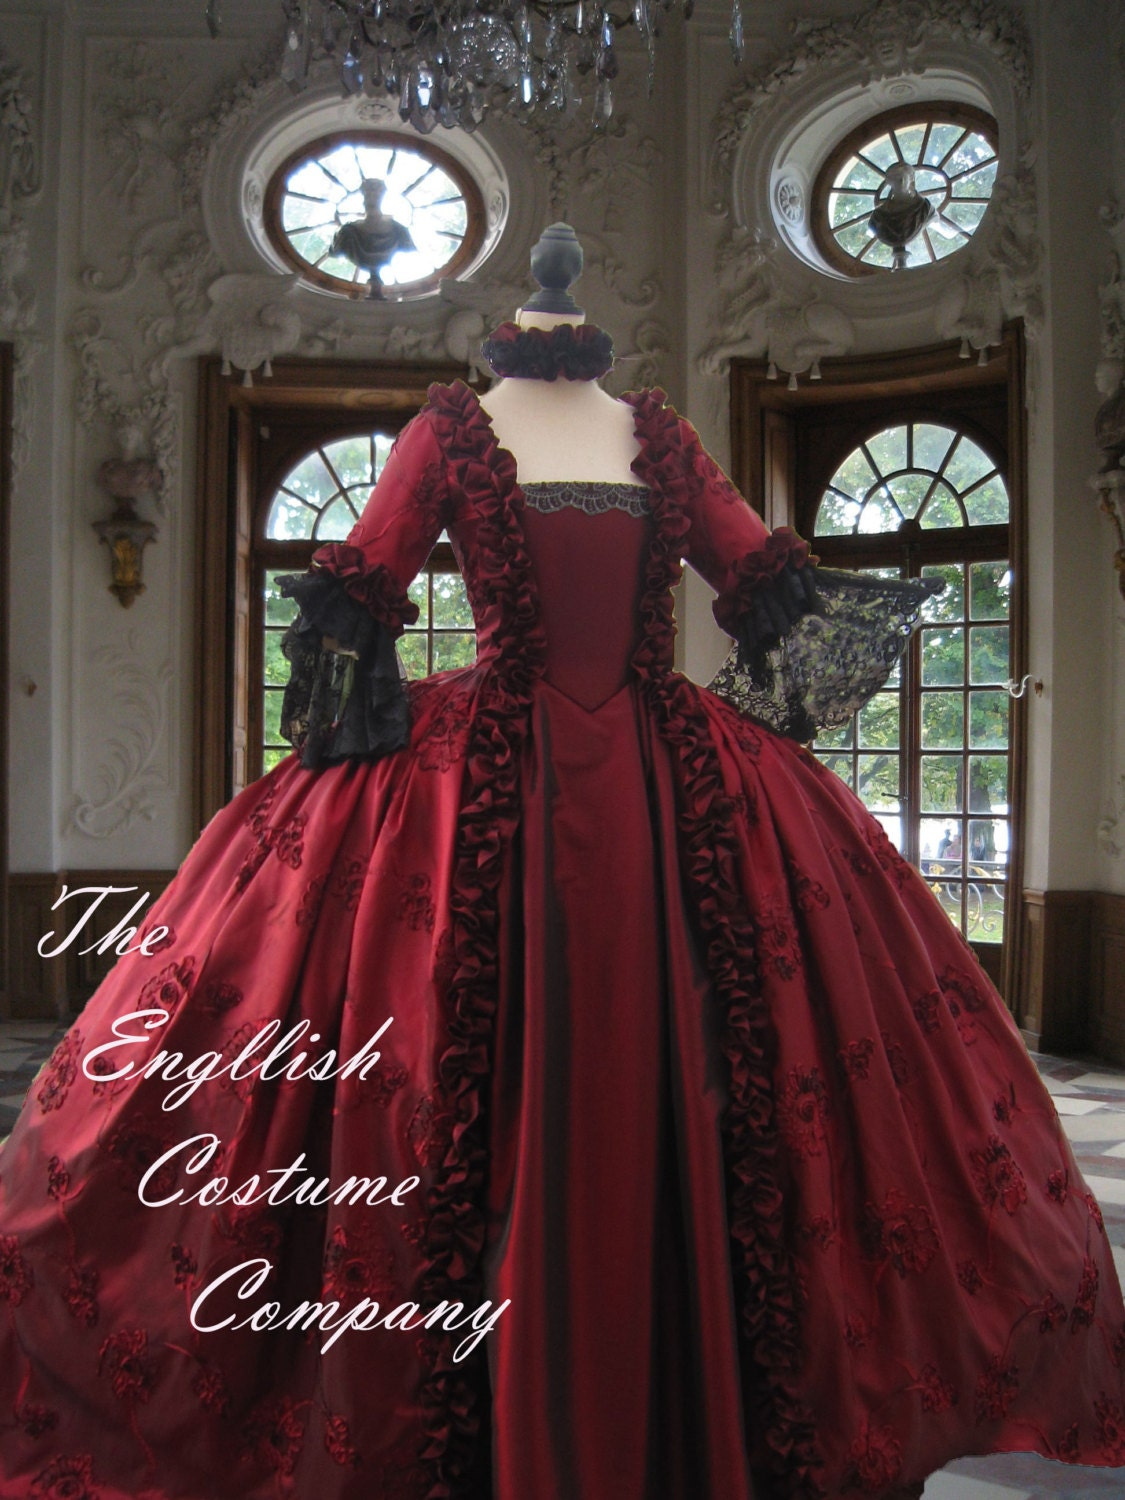 Christmas gown ideas 18th - Marie Antoinette Dress Georgian Taffeta Evening Gown Fully Boned For Authentic Bust Lift